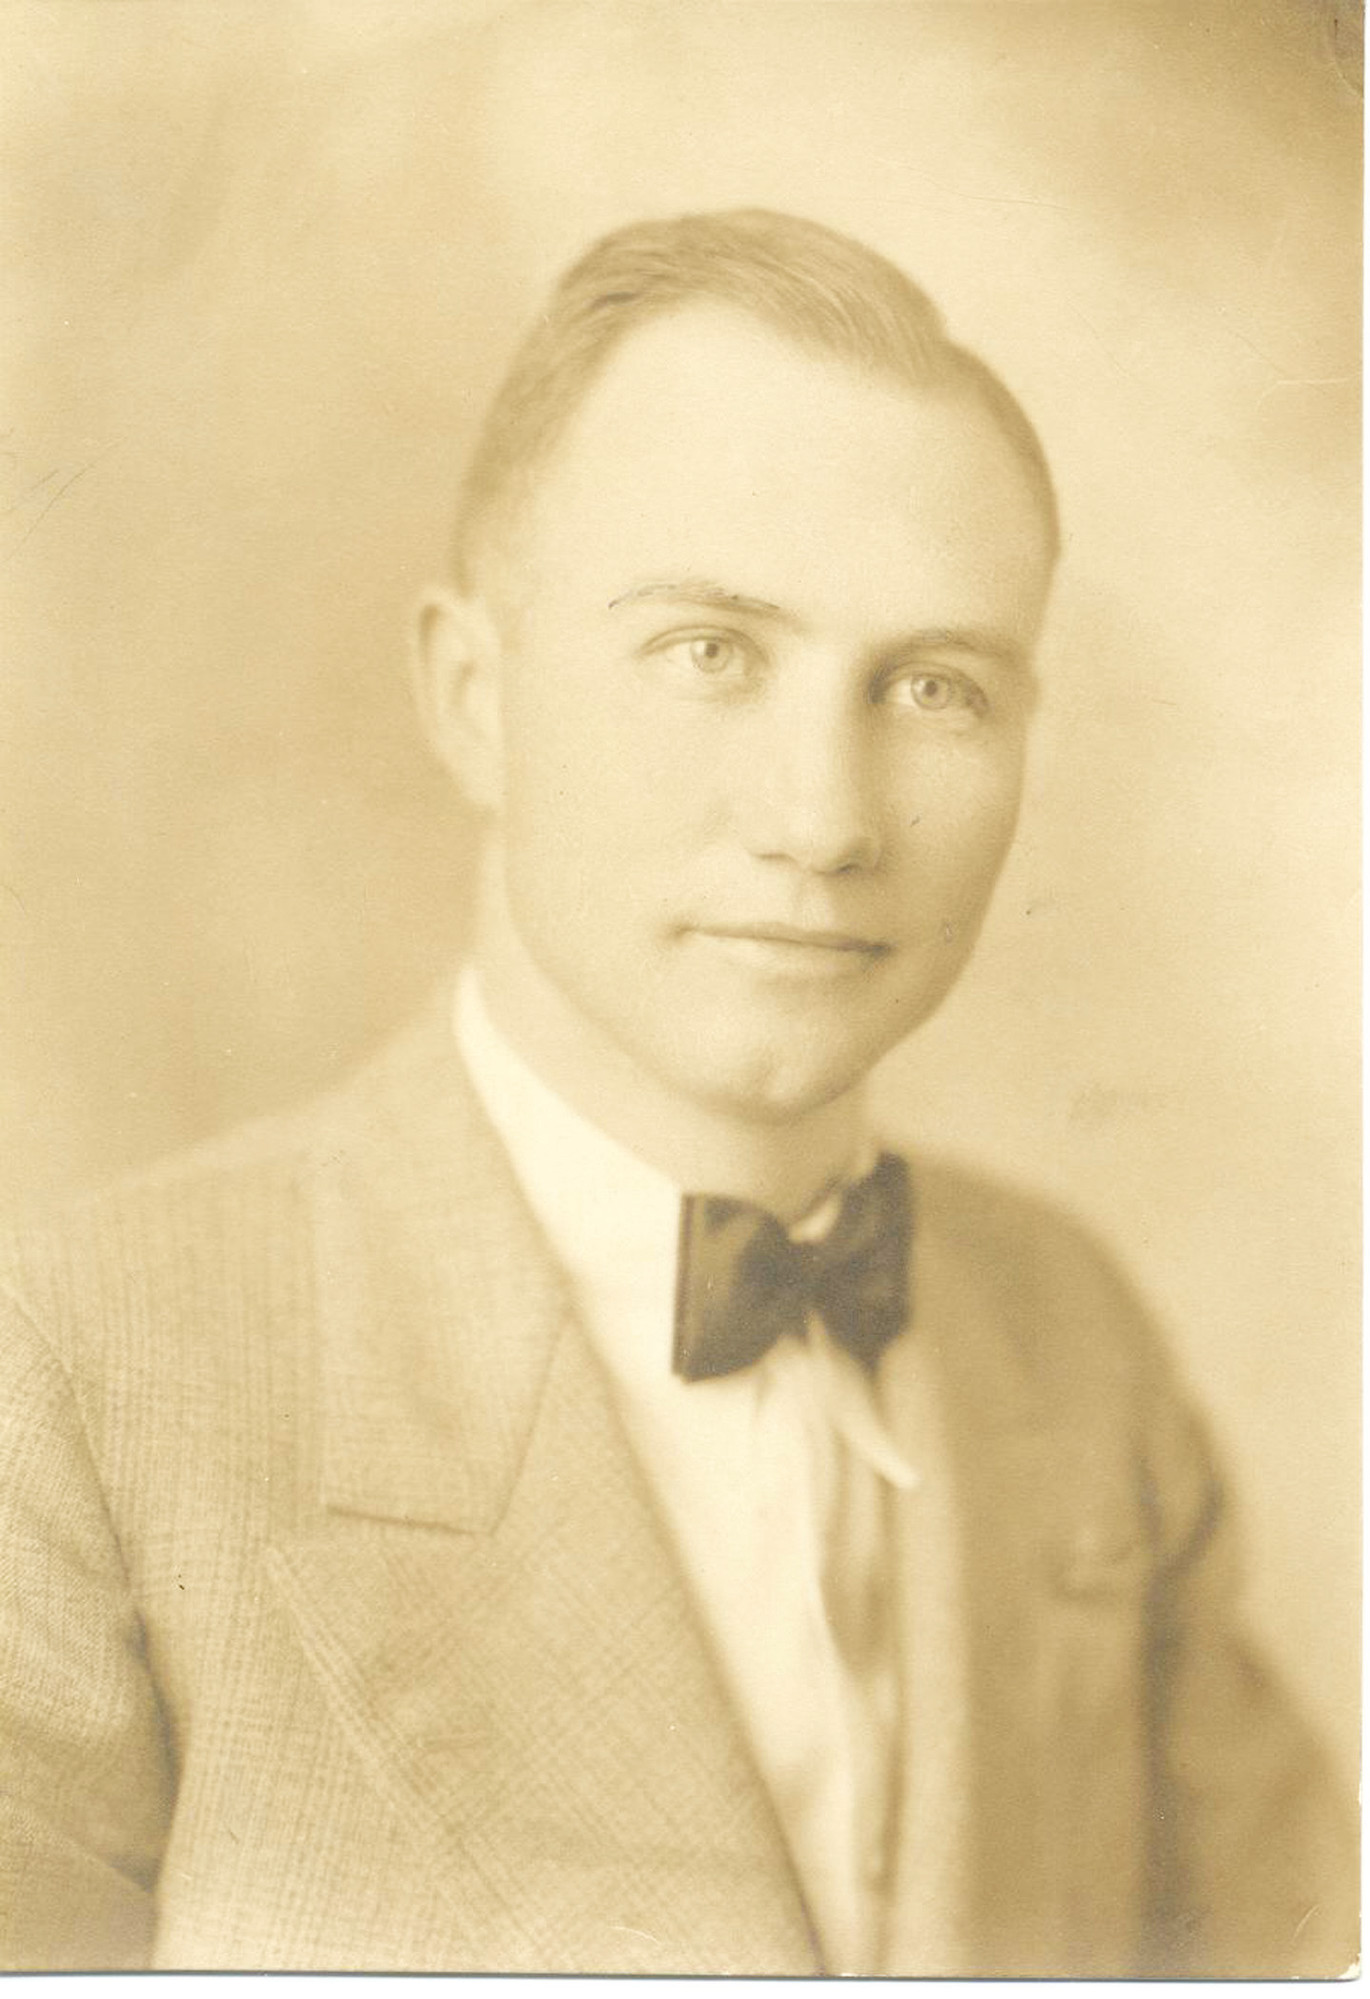 Photo provided by the   s.c. Historical Society  A young Strom Thurmond is shown.